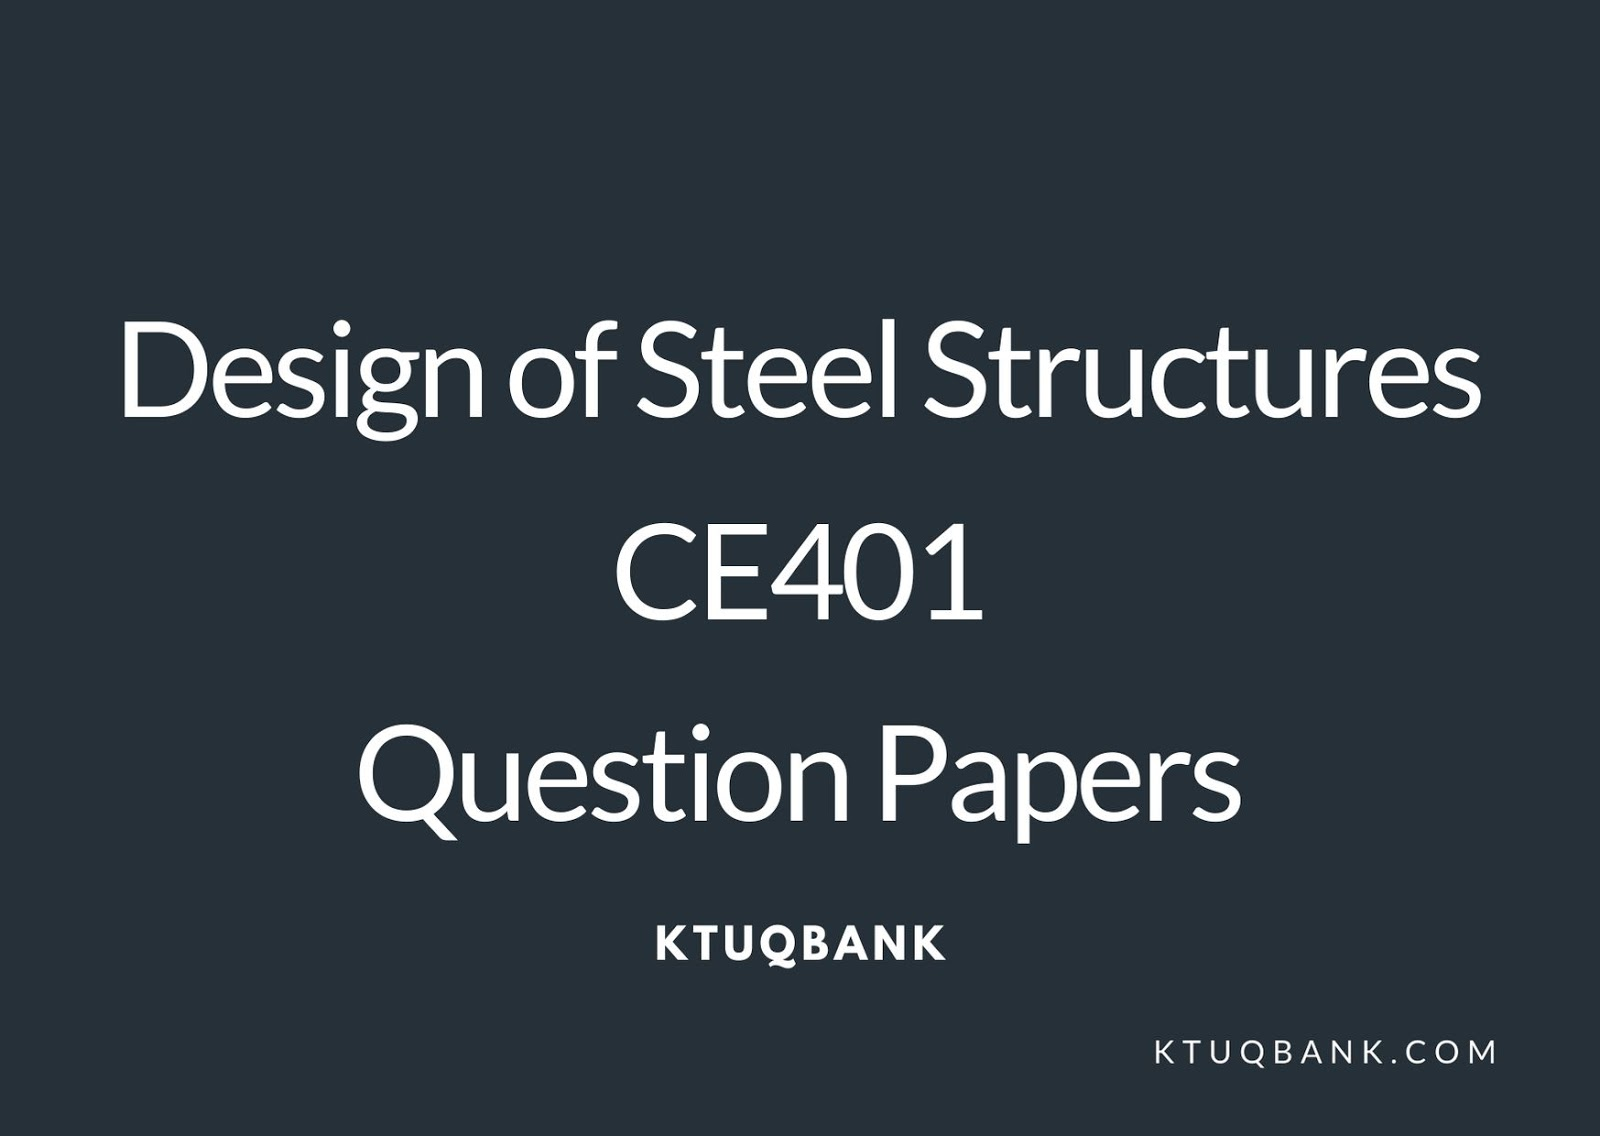 Design of Steel Structures | CE401 | Question Papers (2015 batch)